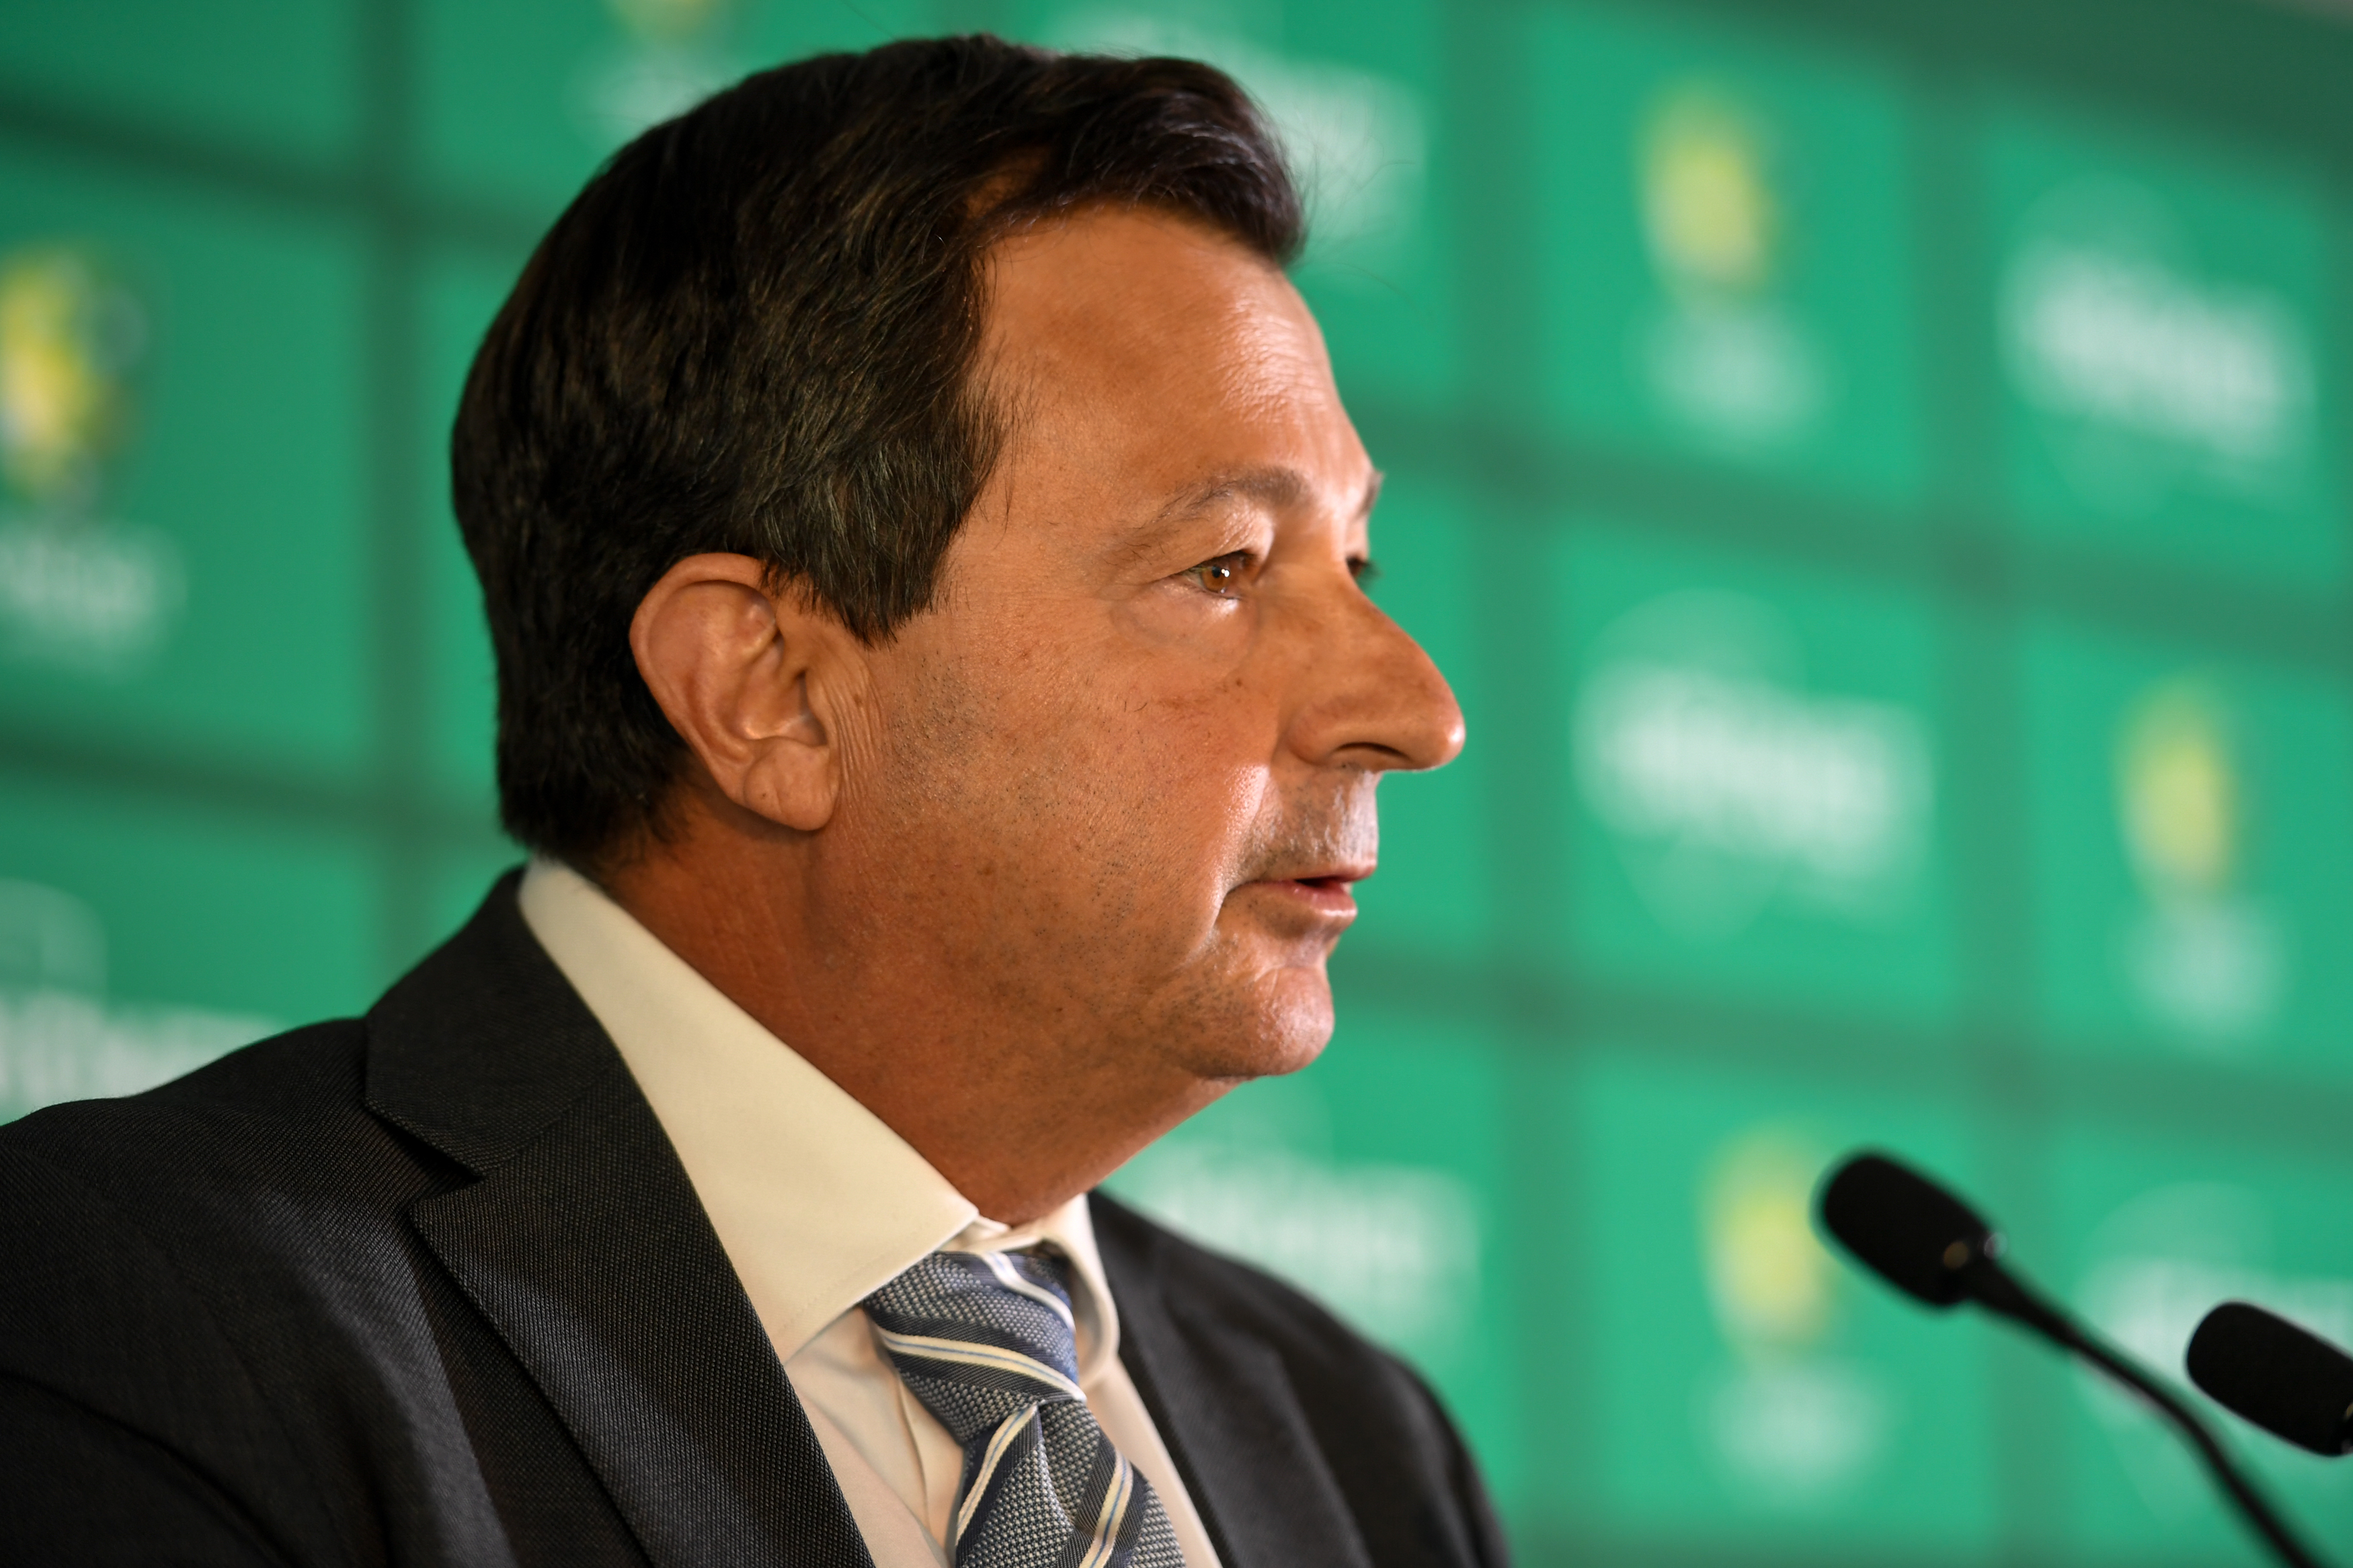 Chappelli's worried about the trends developing in Australian cricket